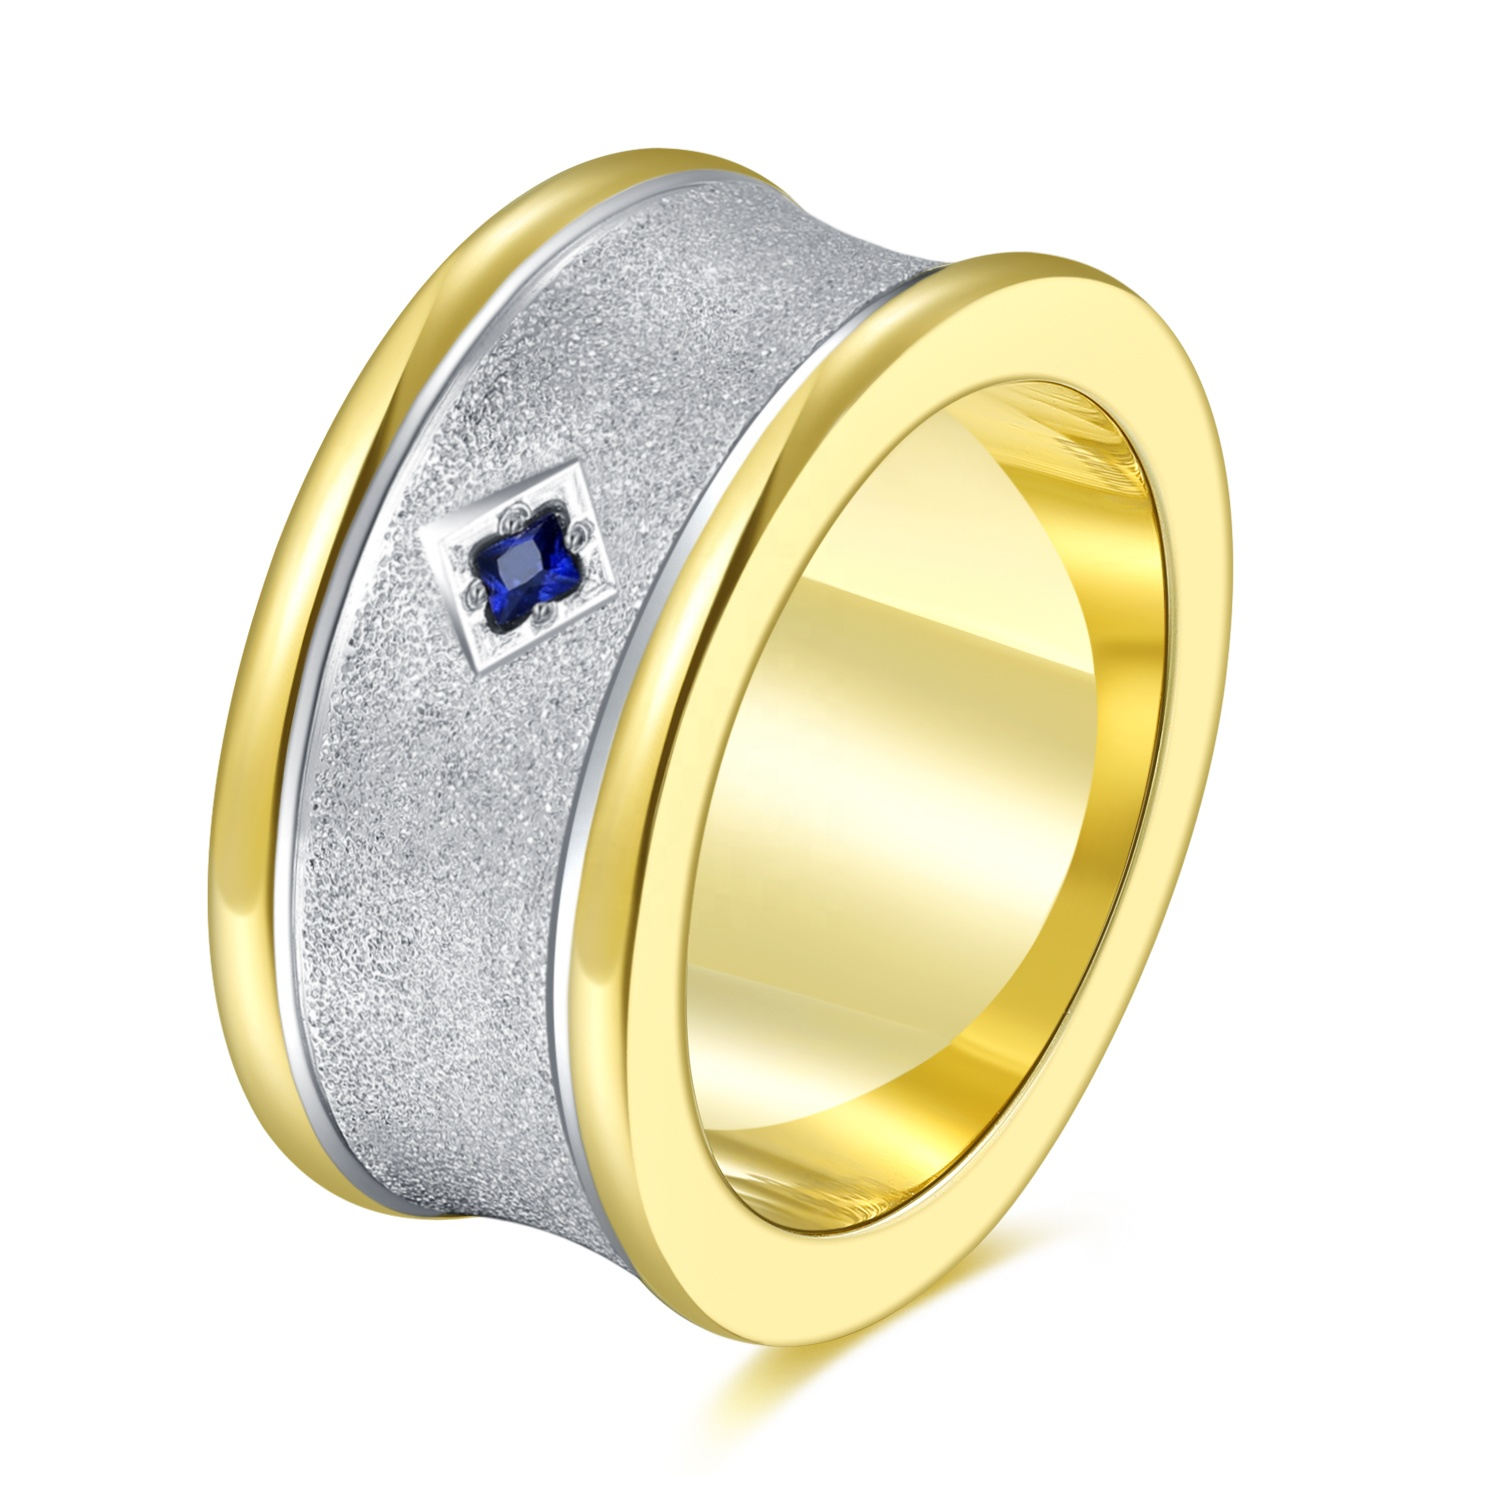 2020 fashion jewelry 14k gold plated ring 316L stainless steel mens ring with blue diamond zircon